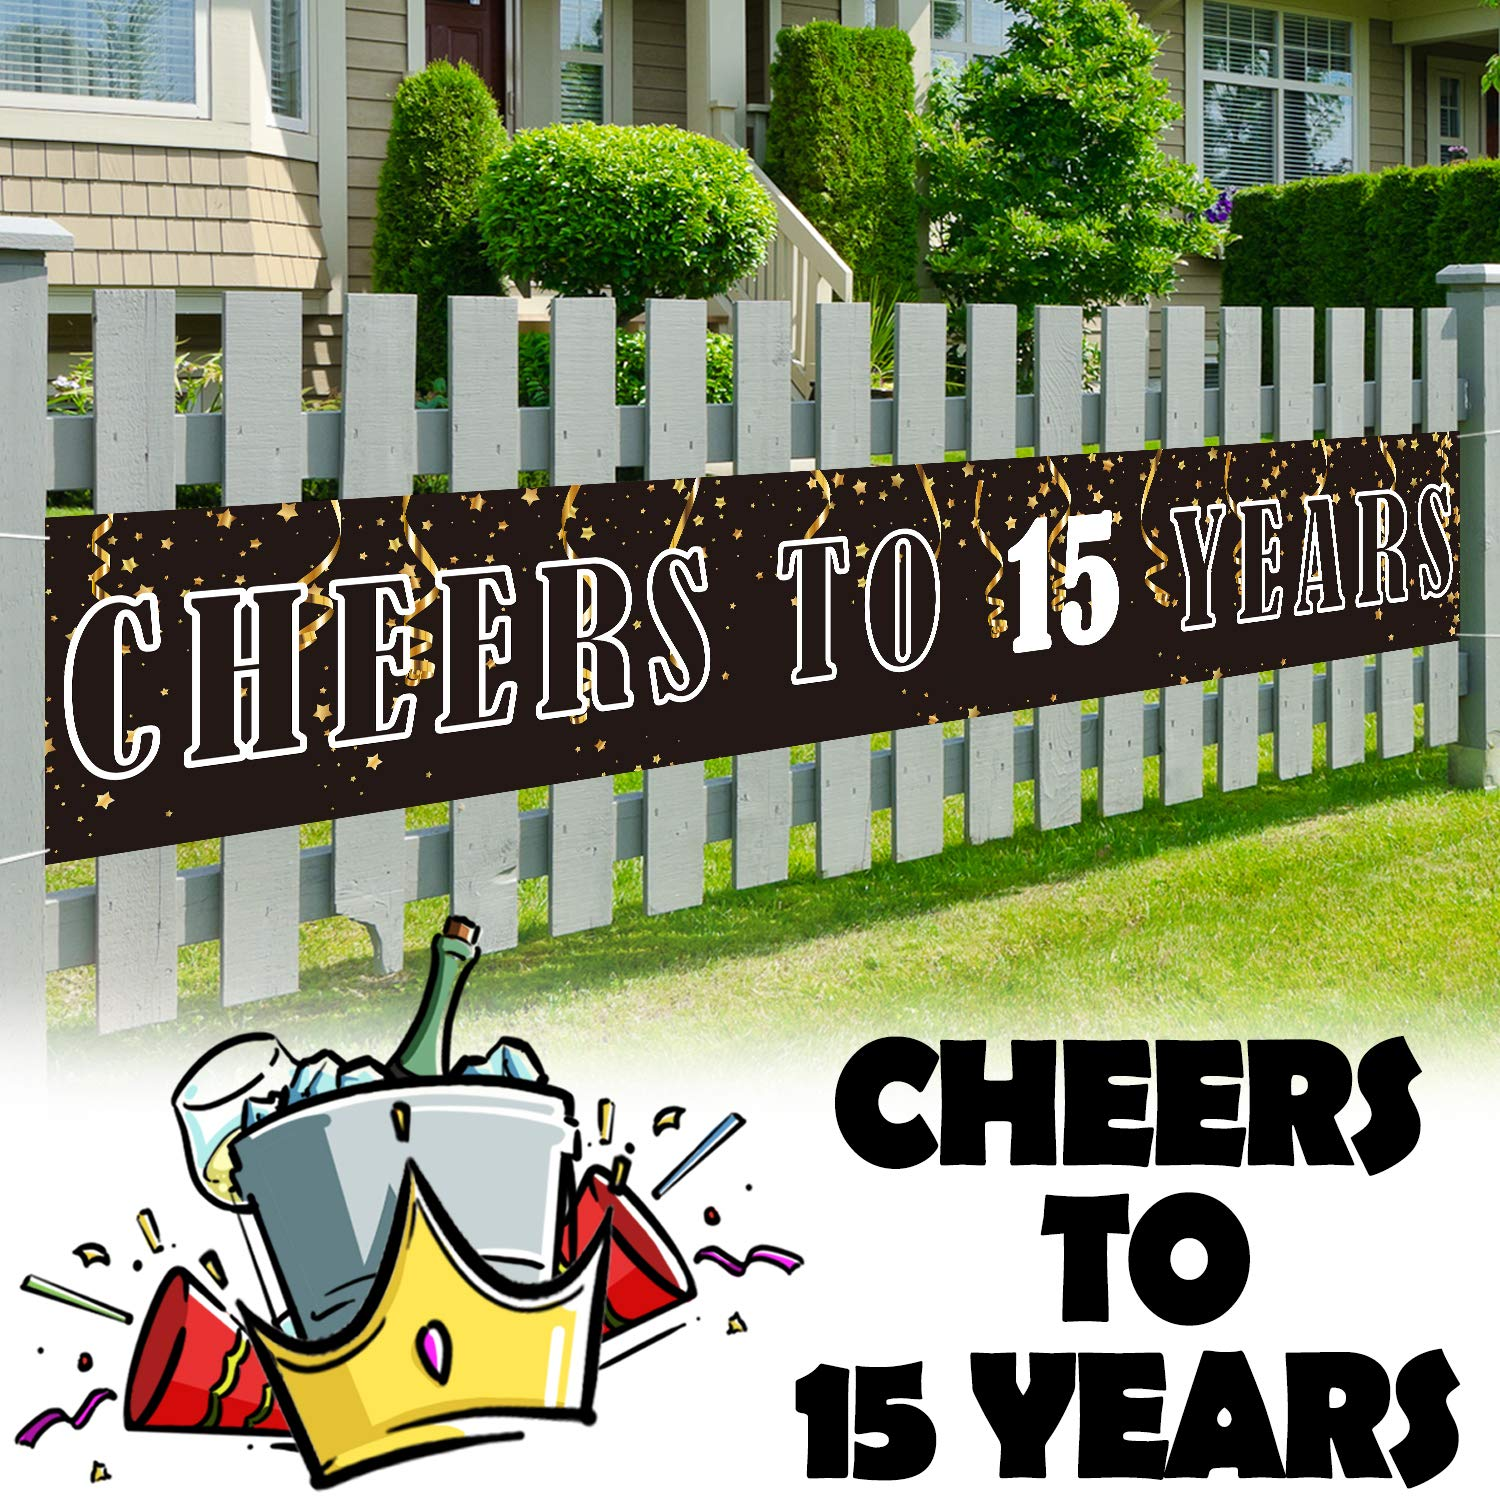 LINGPAR 9.8 x 1.6 ft Large Sign Birthday Or Wedding Anniversary Decor - Cheers to 15 Years Banner